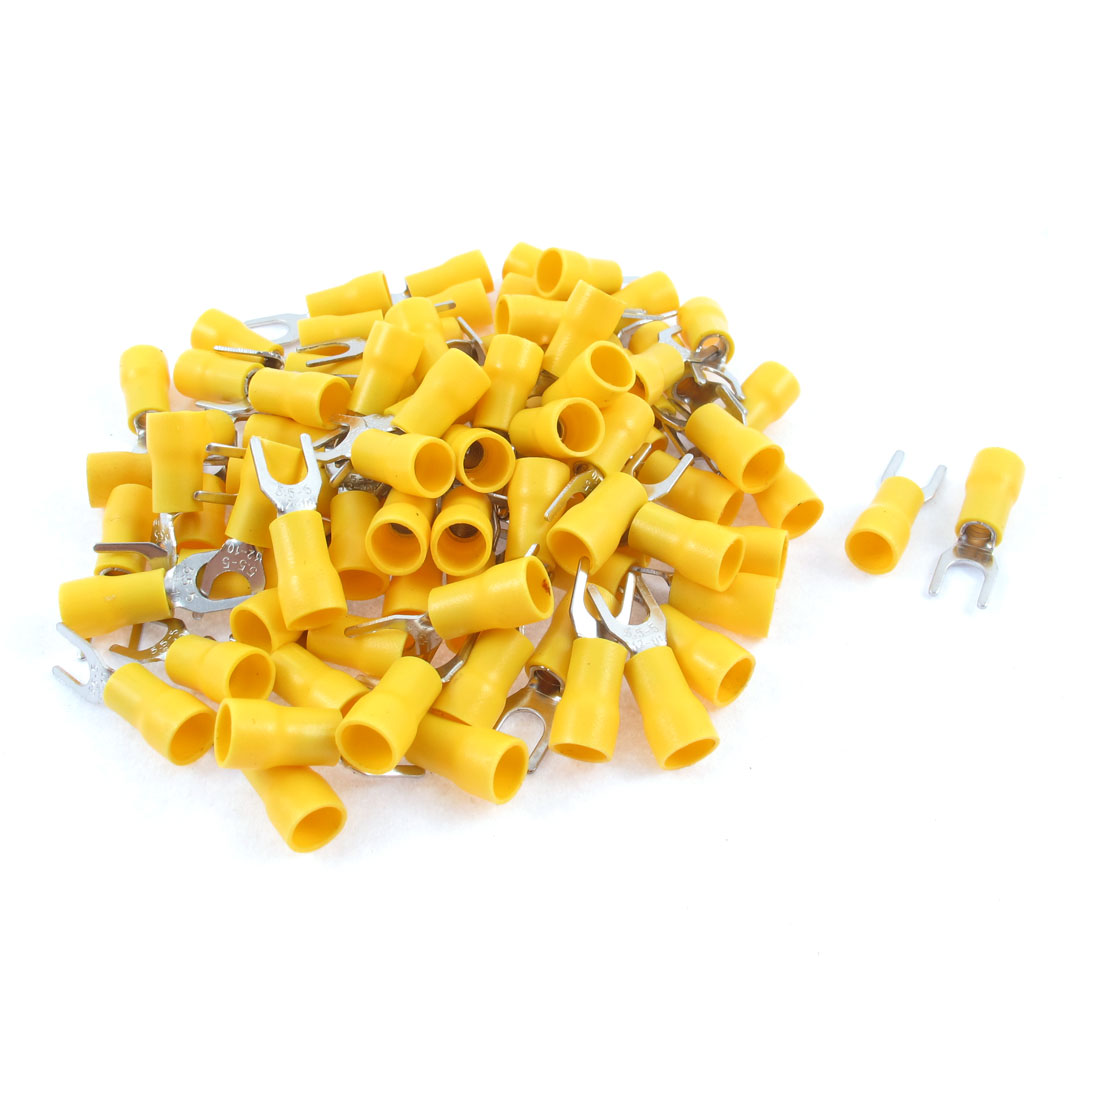 Unique Bargains 85PCS 12-10 AWG Stud Yellow Insulated Fork Spade Terminals Electrical Connector